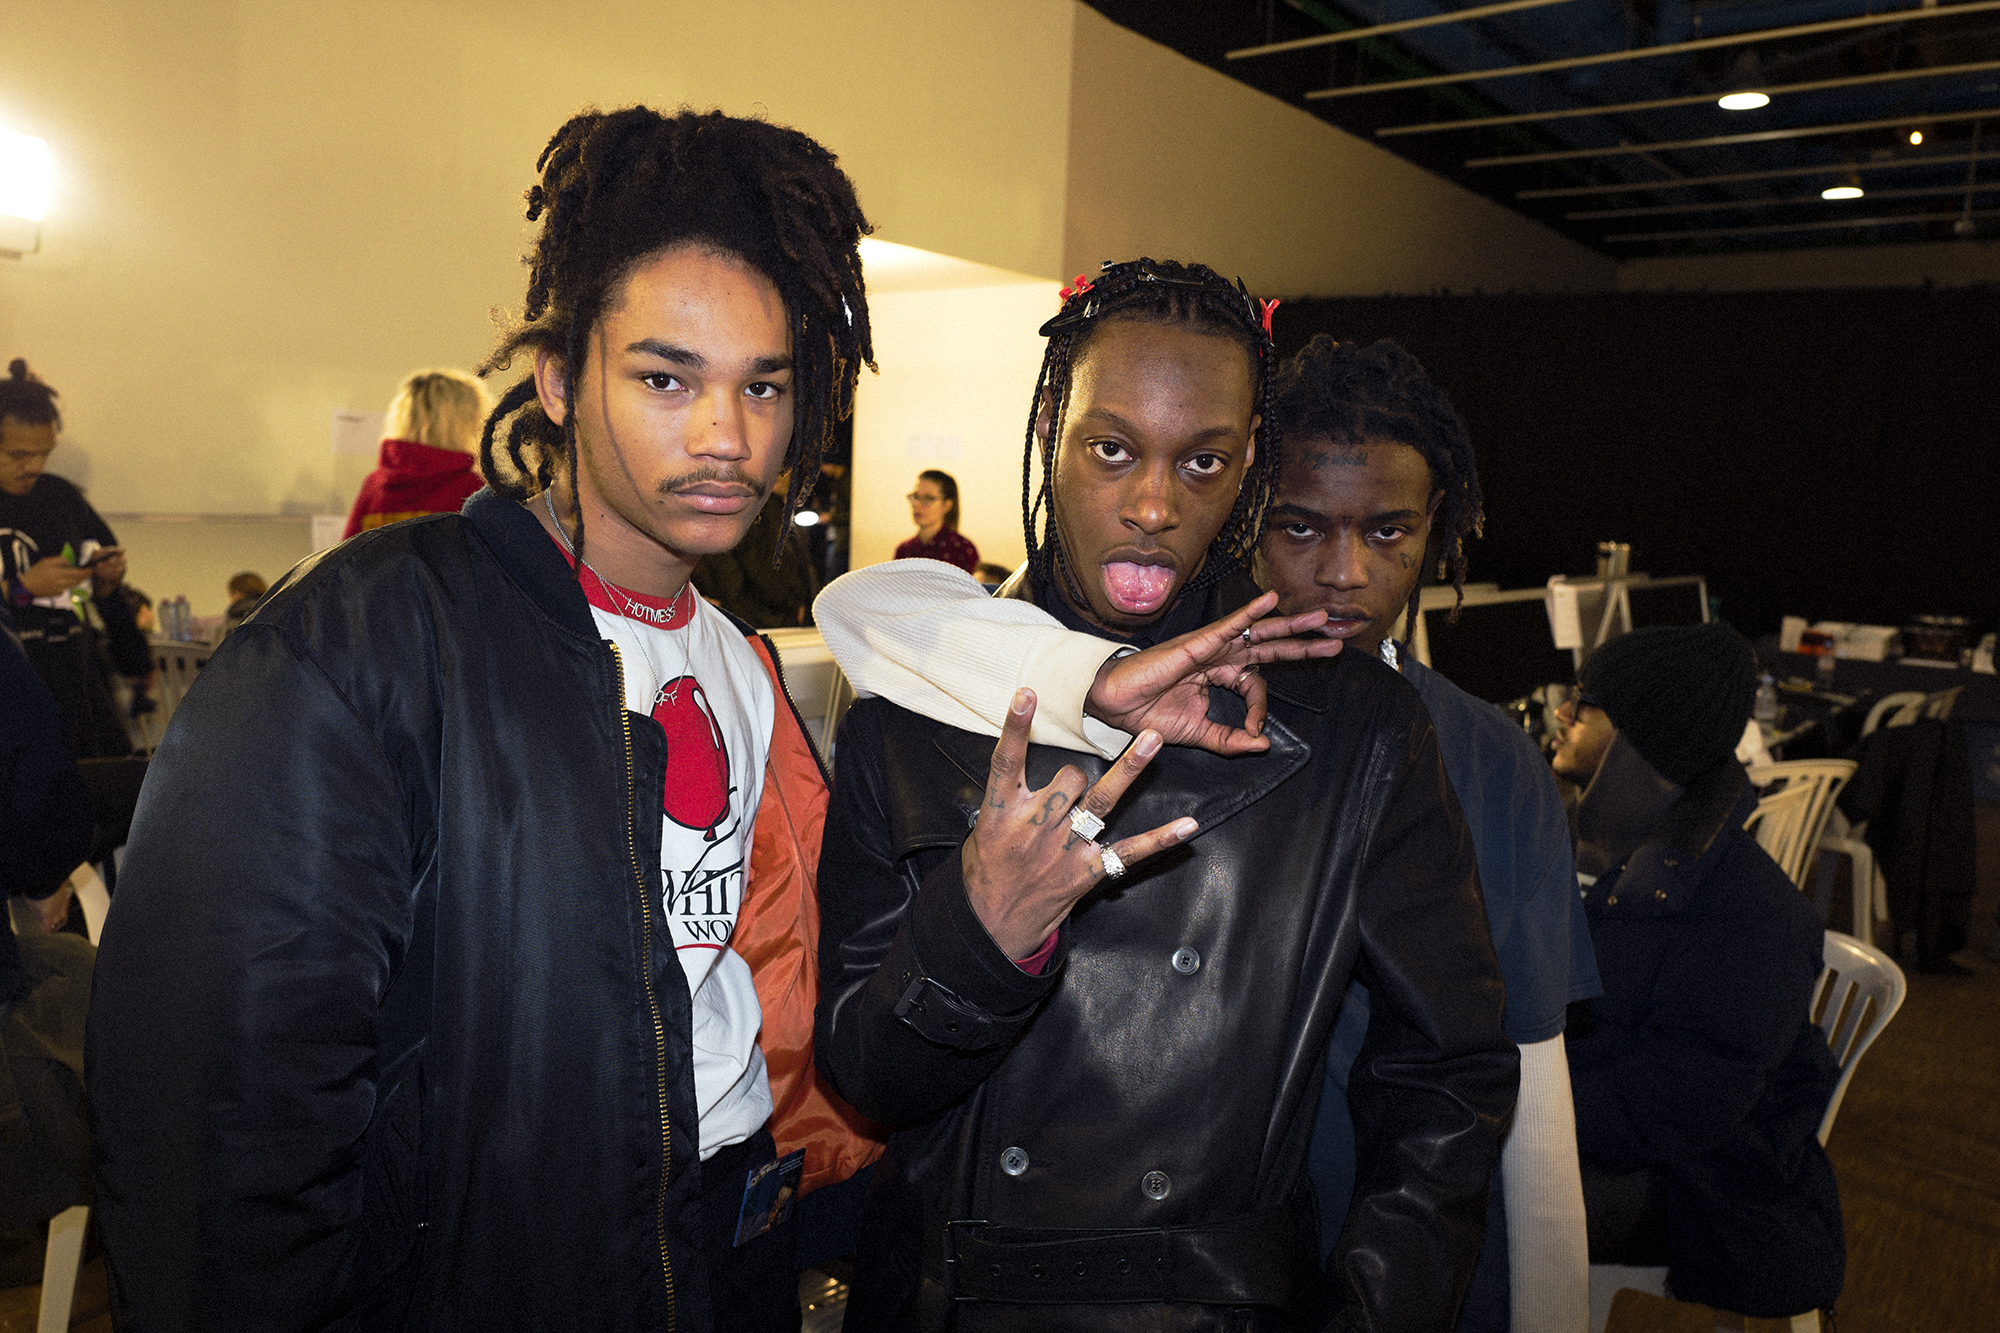 Luka Sabbat Bloody Osiris Ian Connor.jpg